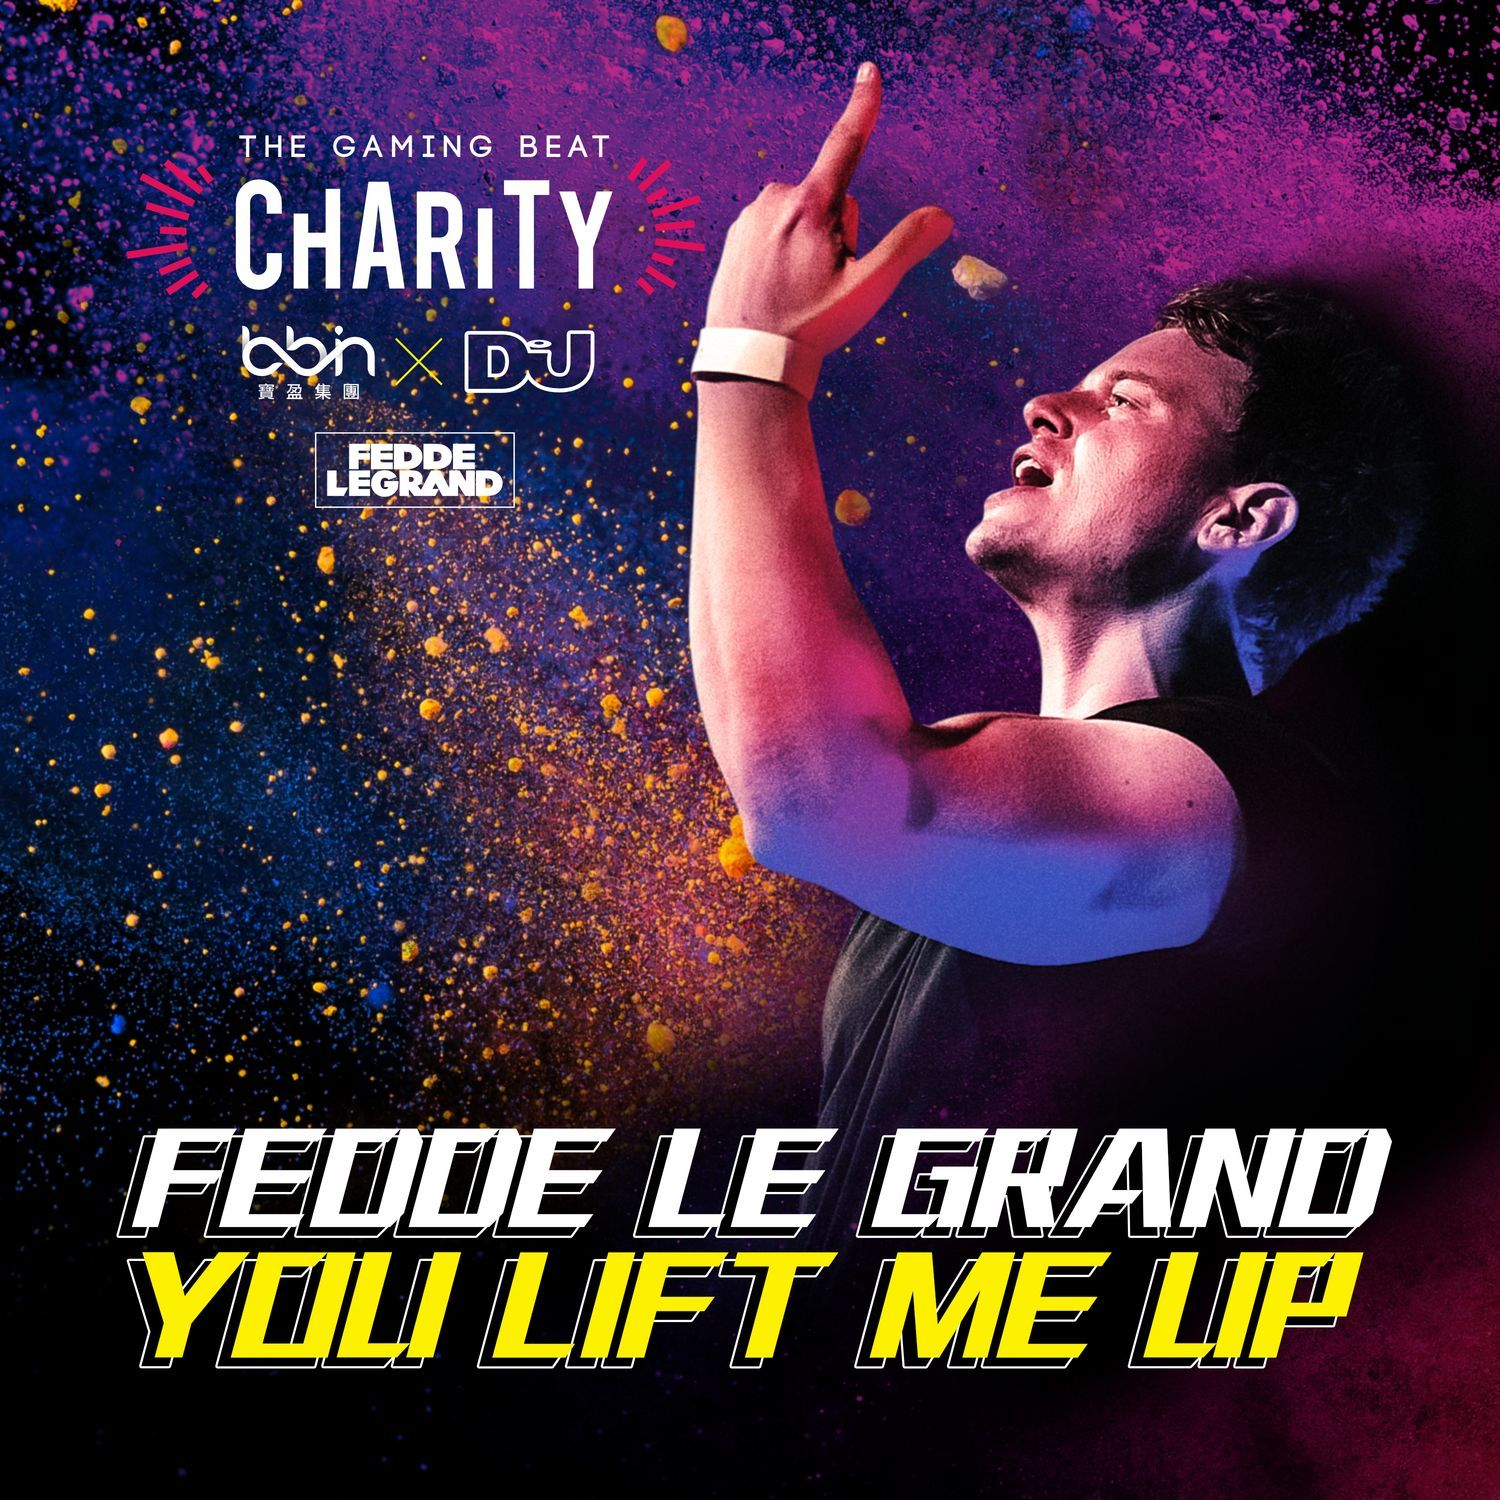 Fedde Le Grand - You Lift Me Up